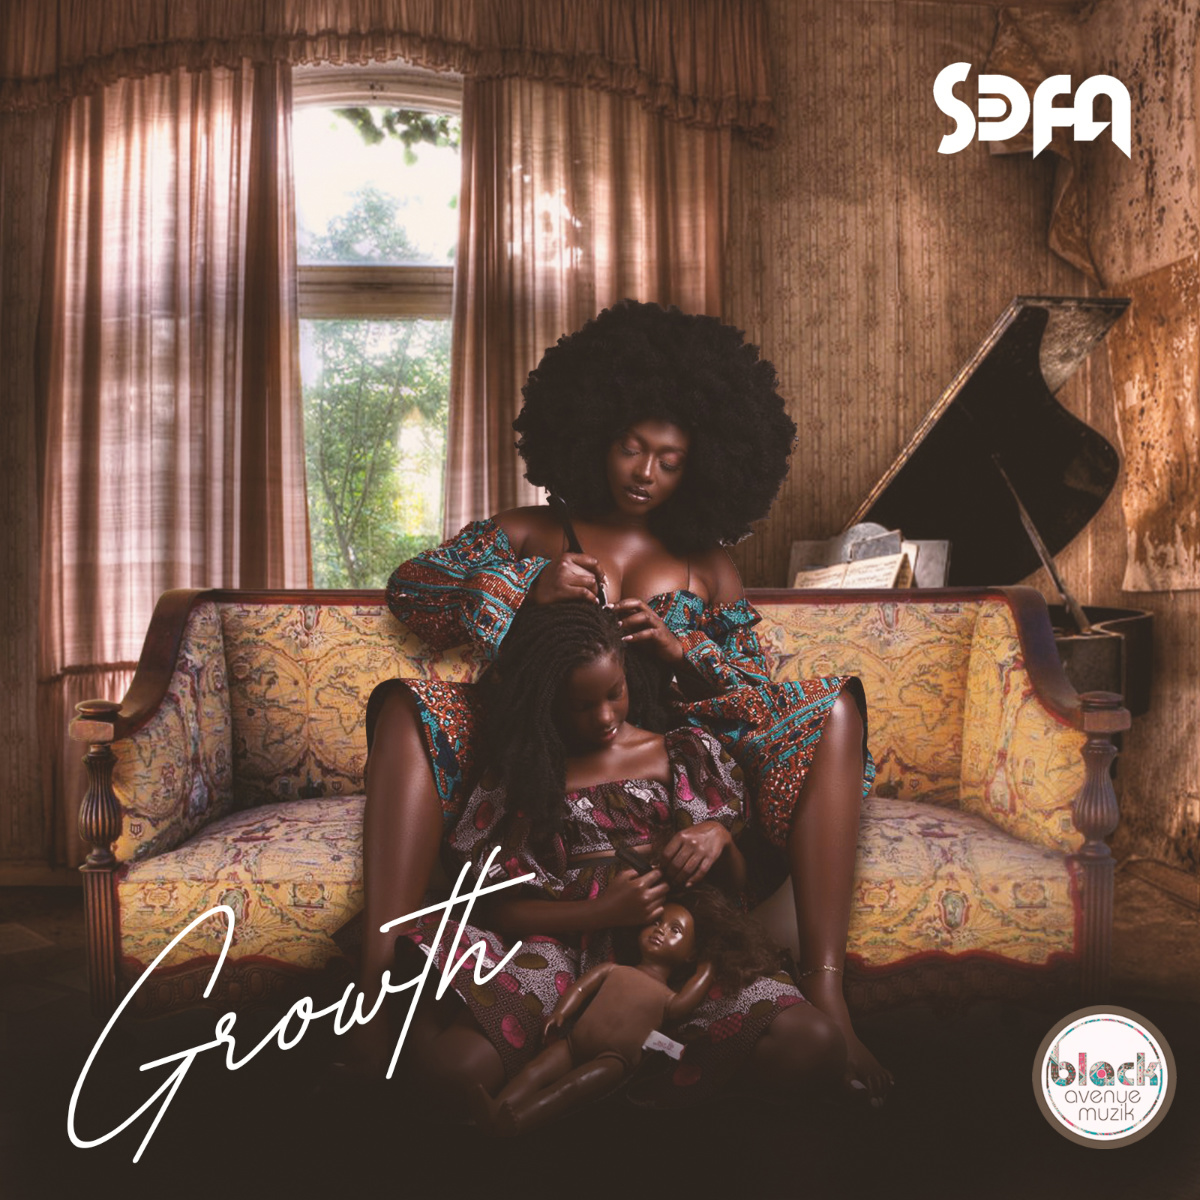 ALBUM: GROWTH BY S3FA